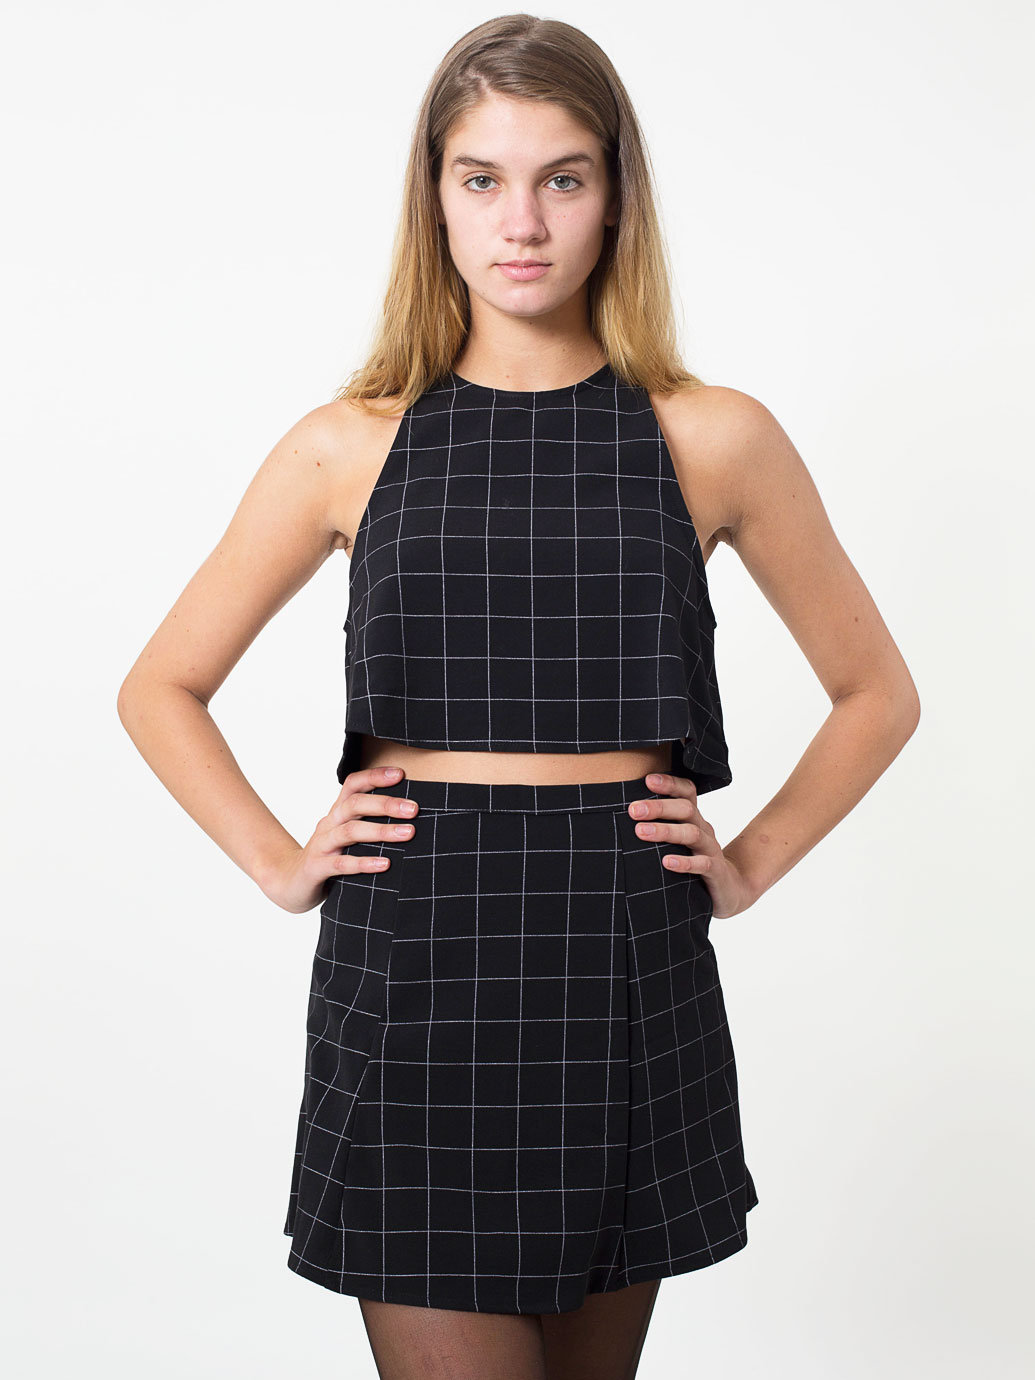 The Grid Print Lulu Mini Skirt | American Apparel